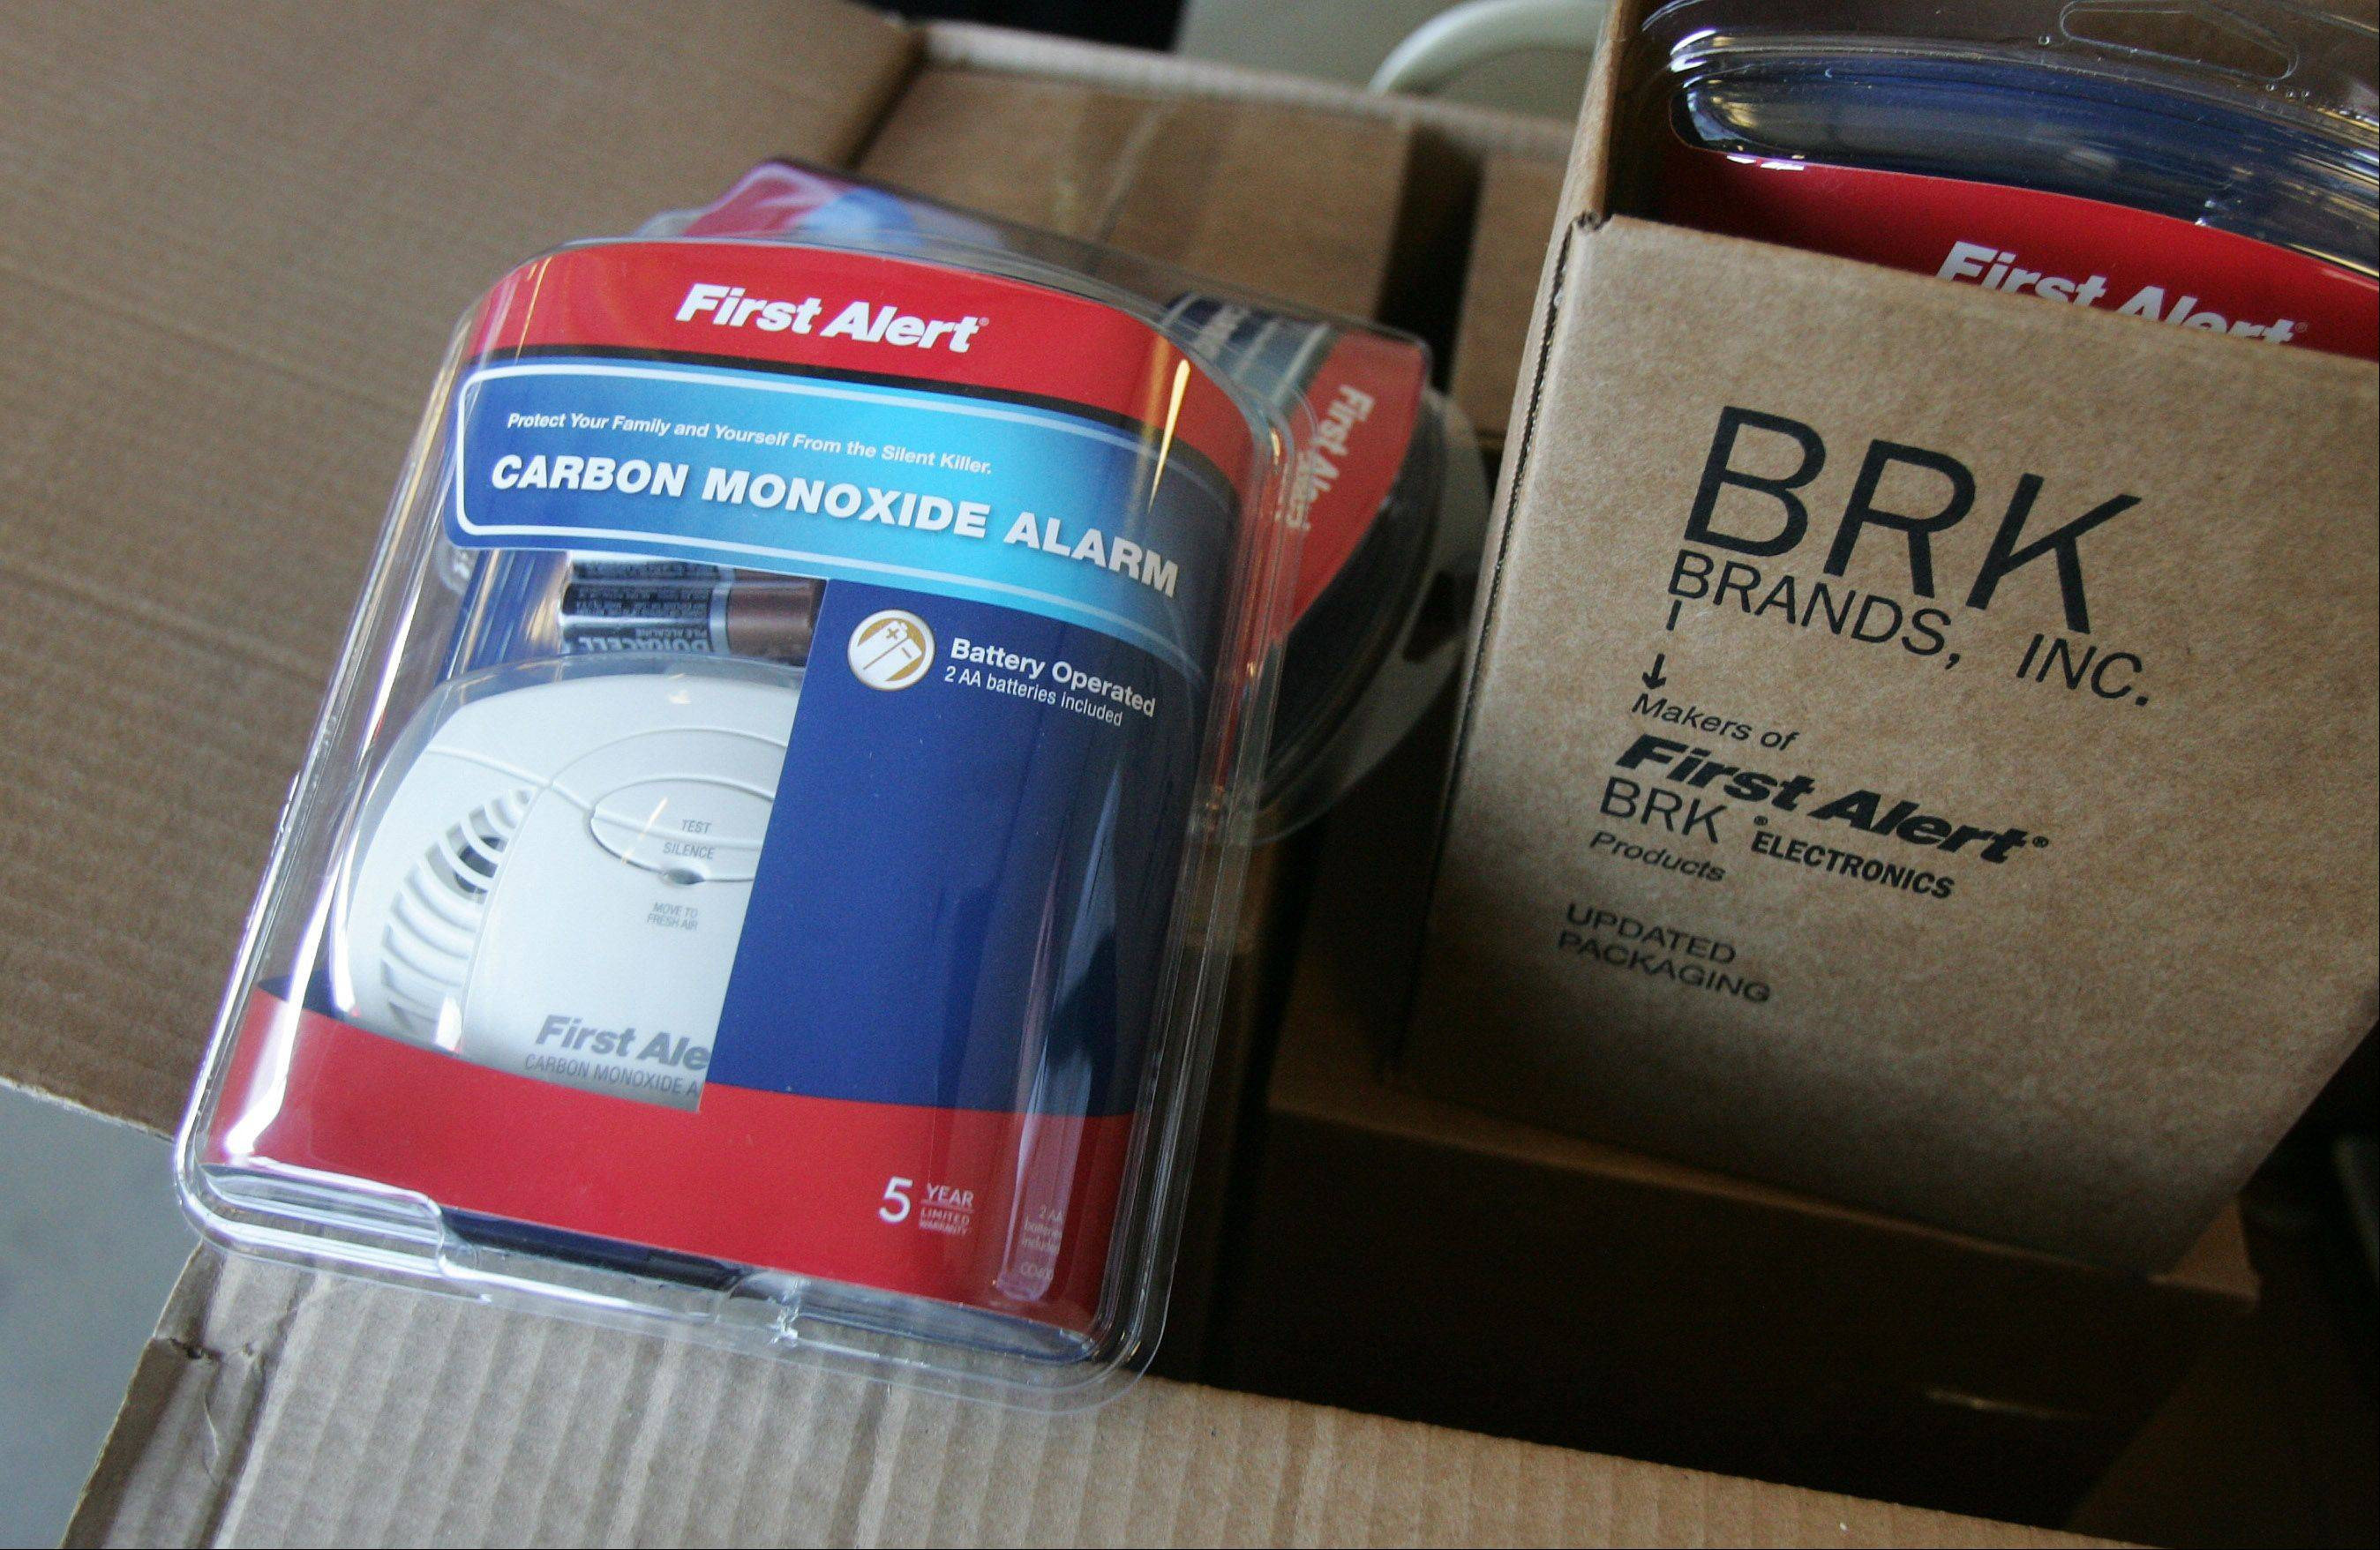 North Shore Gas donated the First Alert carbon monoxide detectors to the Mundelein and Grayslake fire departments on to be given to residents in need.